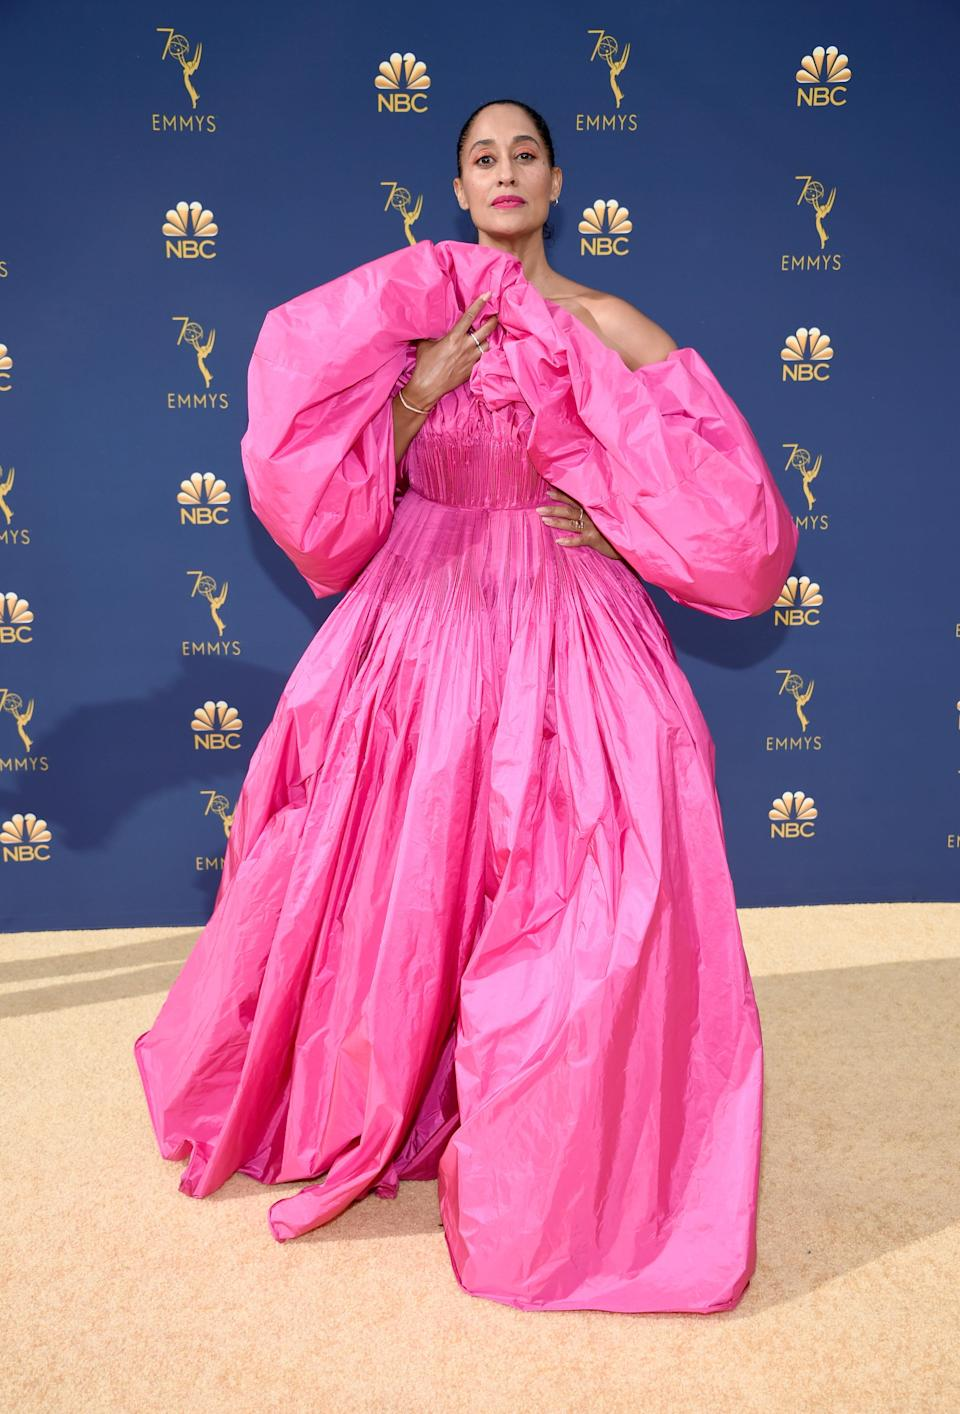 Tracee Ellis Ross arrives to the 70th Annual Primetime Emmy Awards held at the Microsoft Theater on September 17, 2018 (Kevin Mazur via Getty Images)